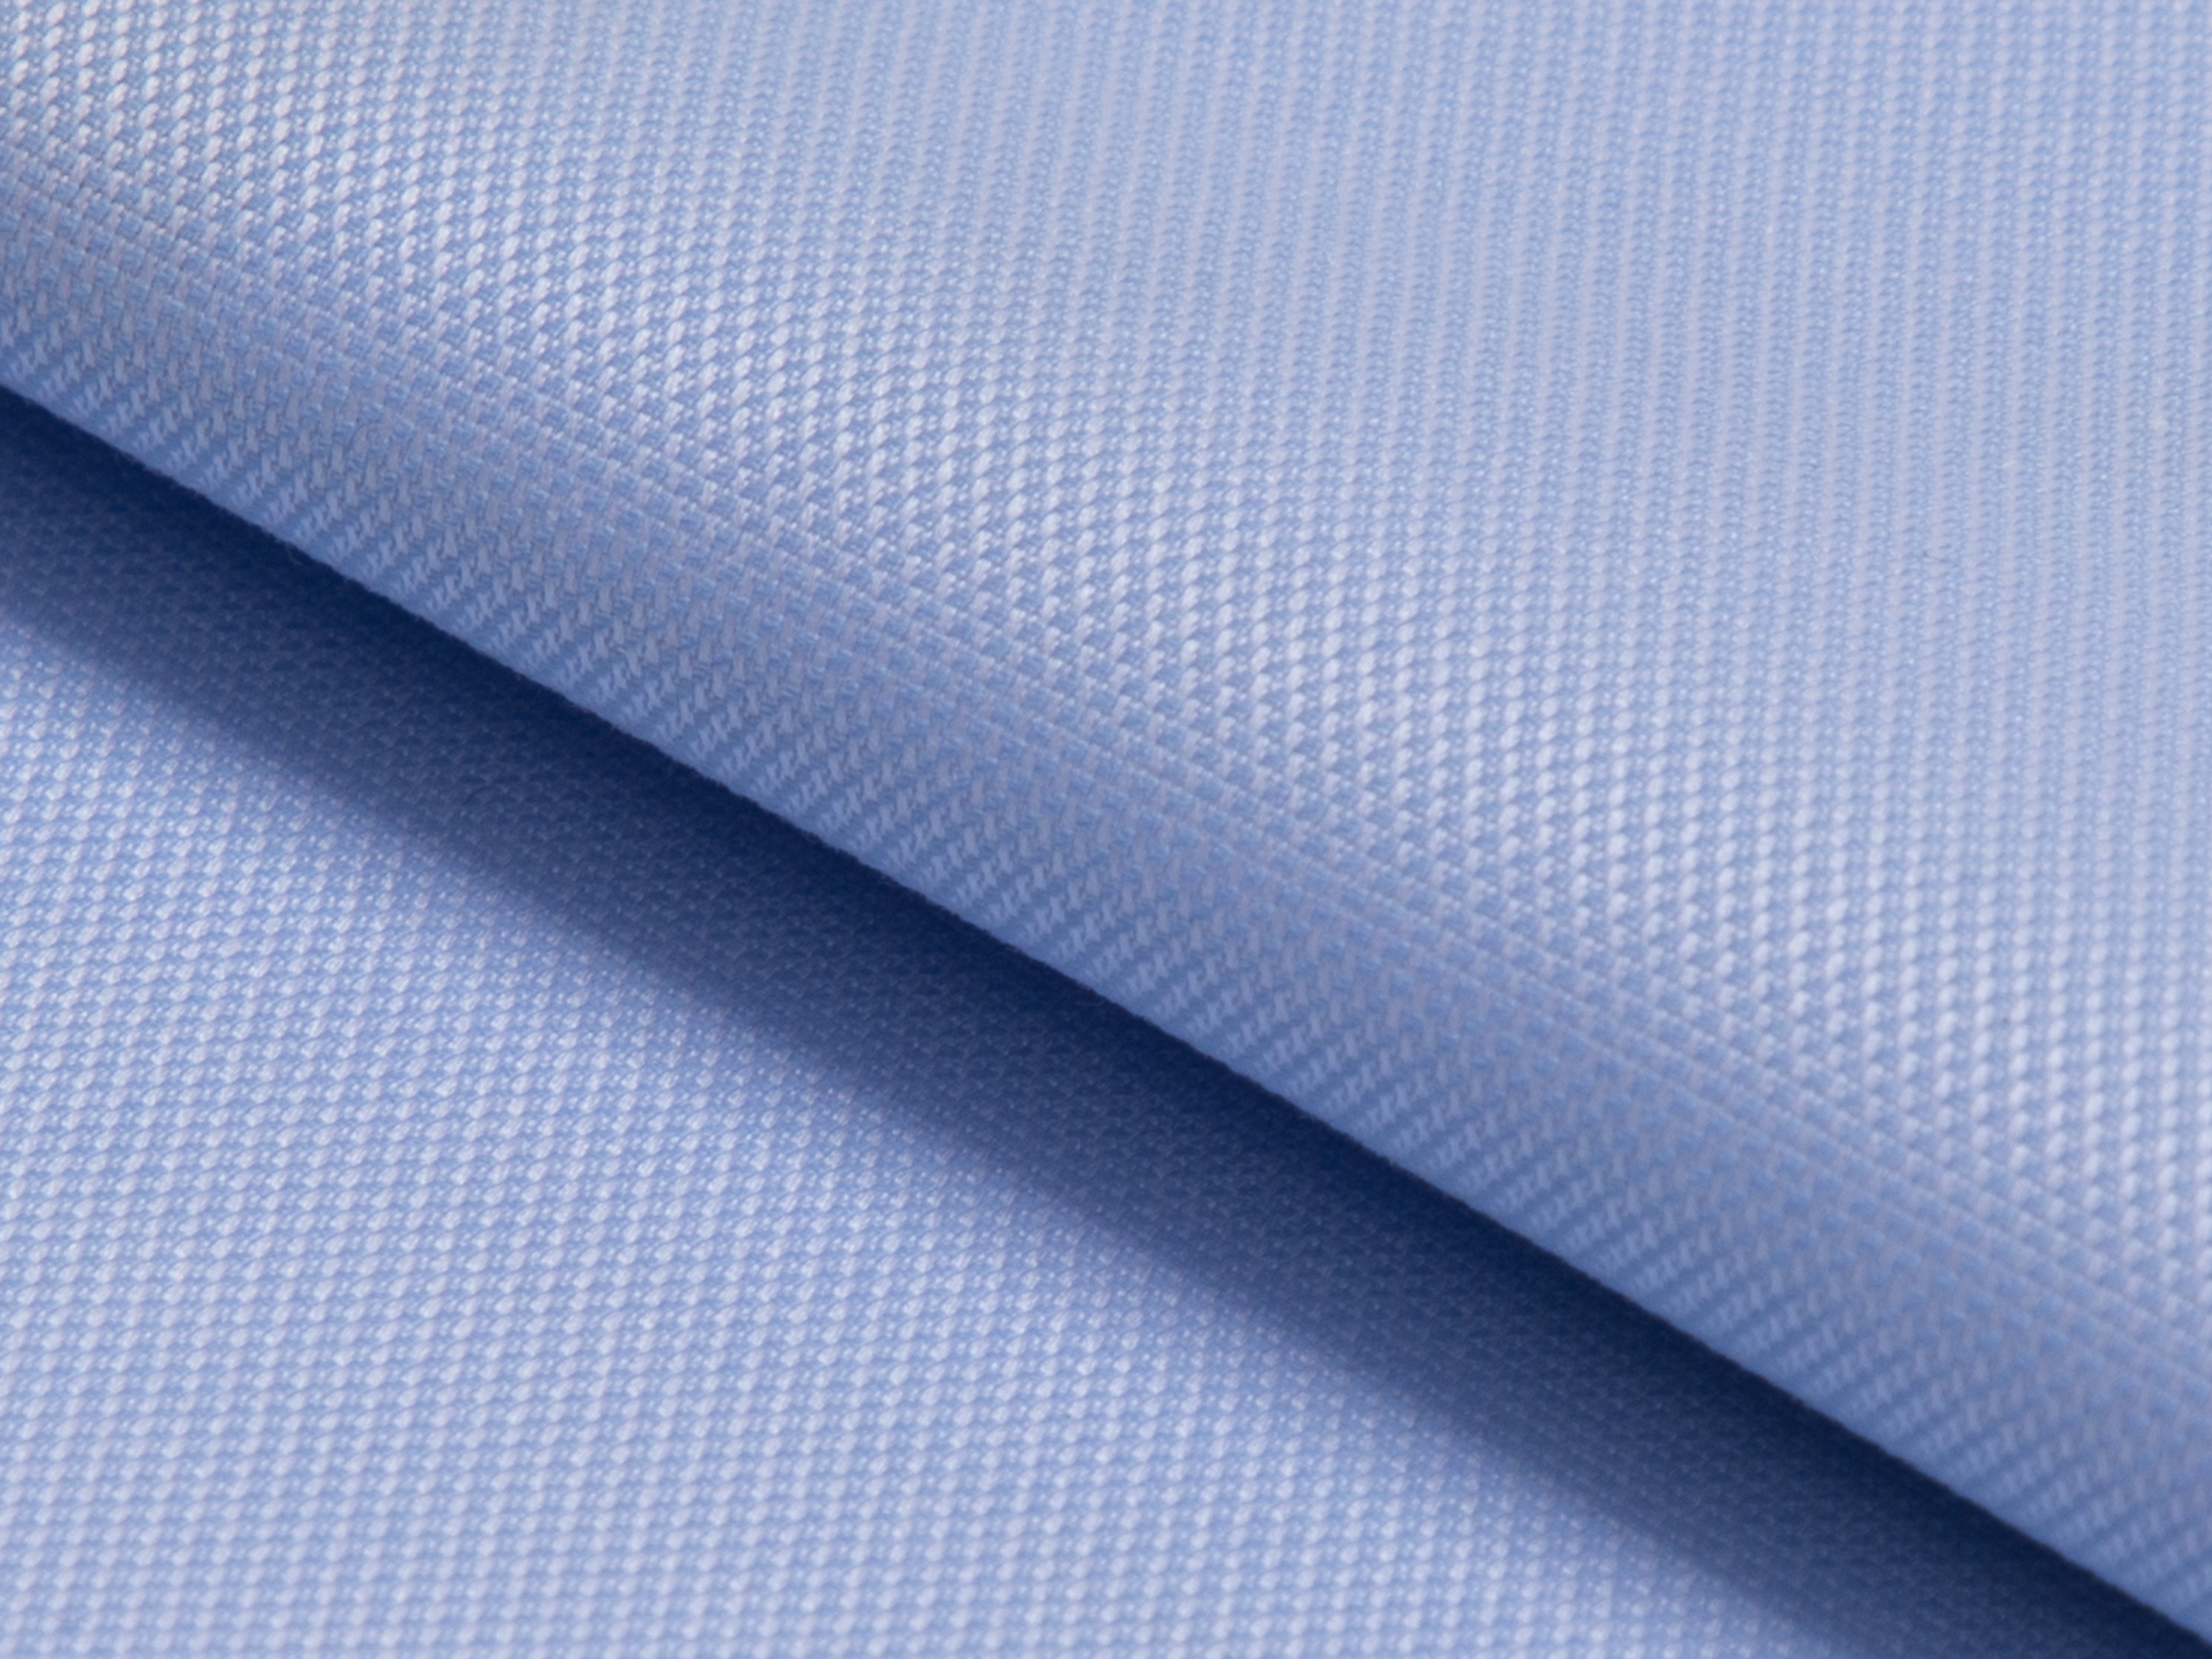 Buy tailor made shirts online - MAYFAIR (NEW) - Pinpoint Light Blue